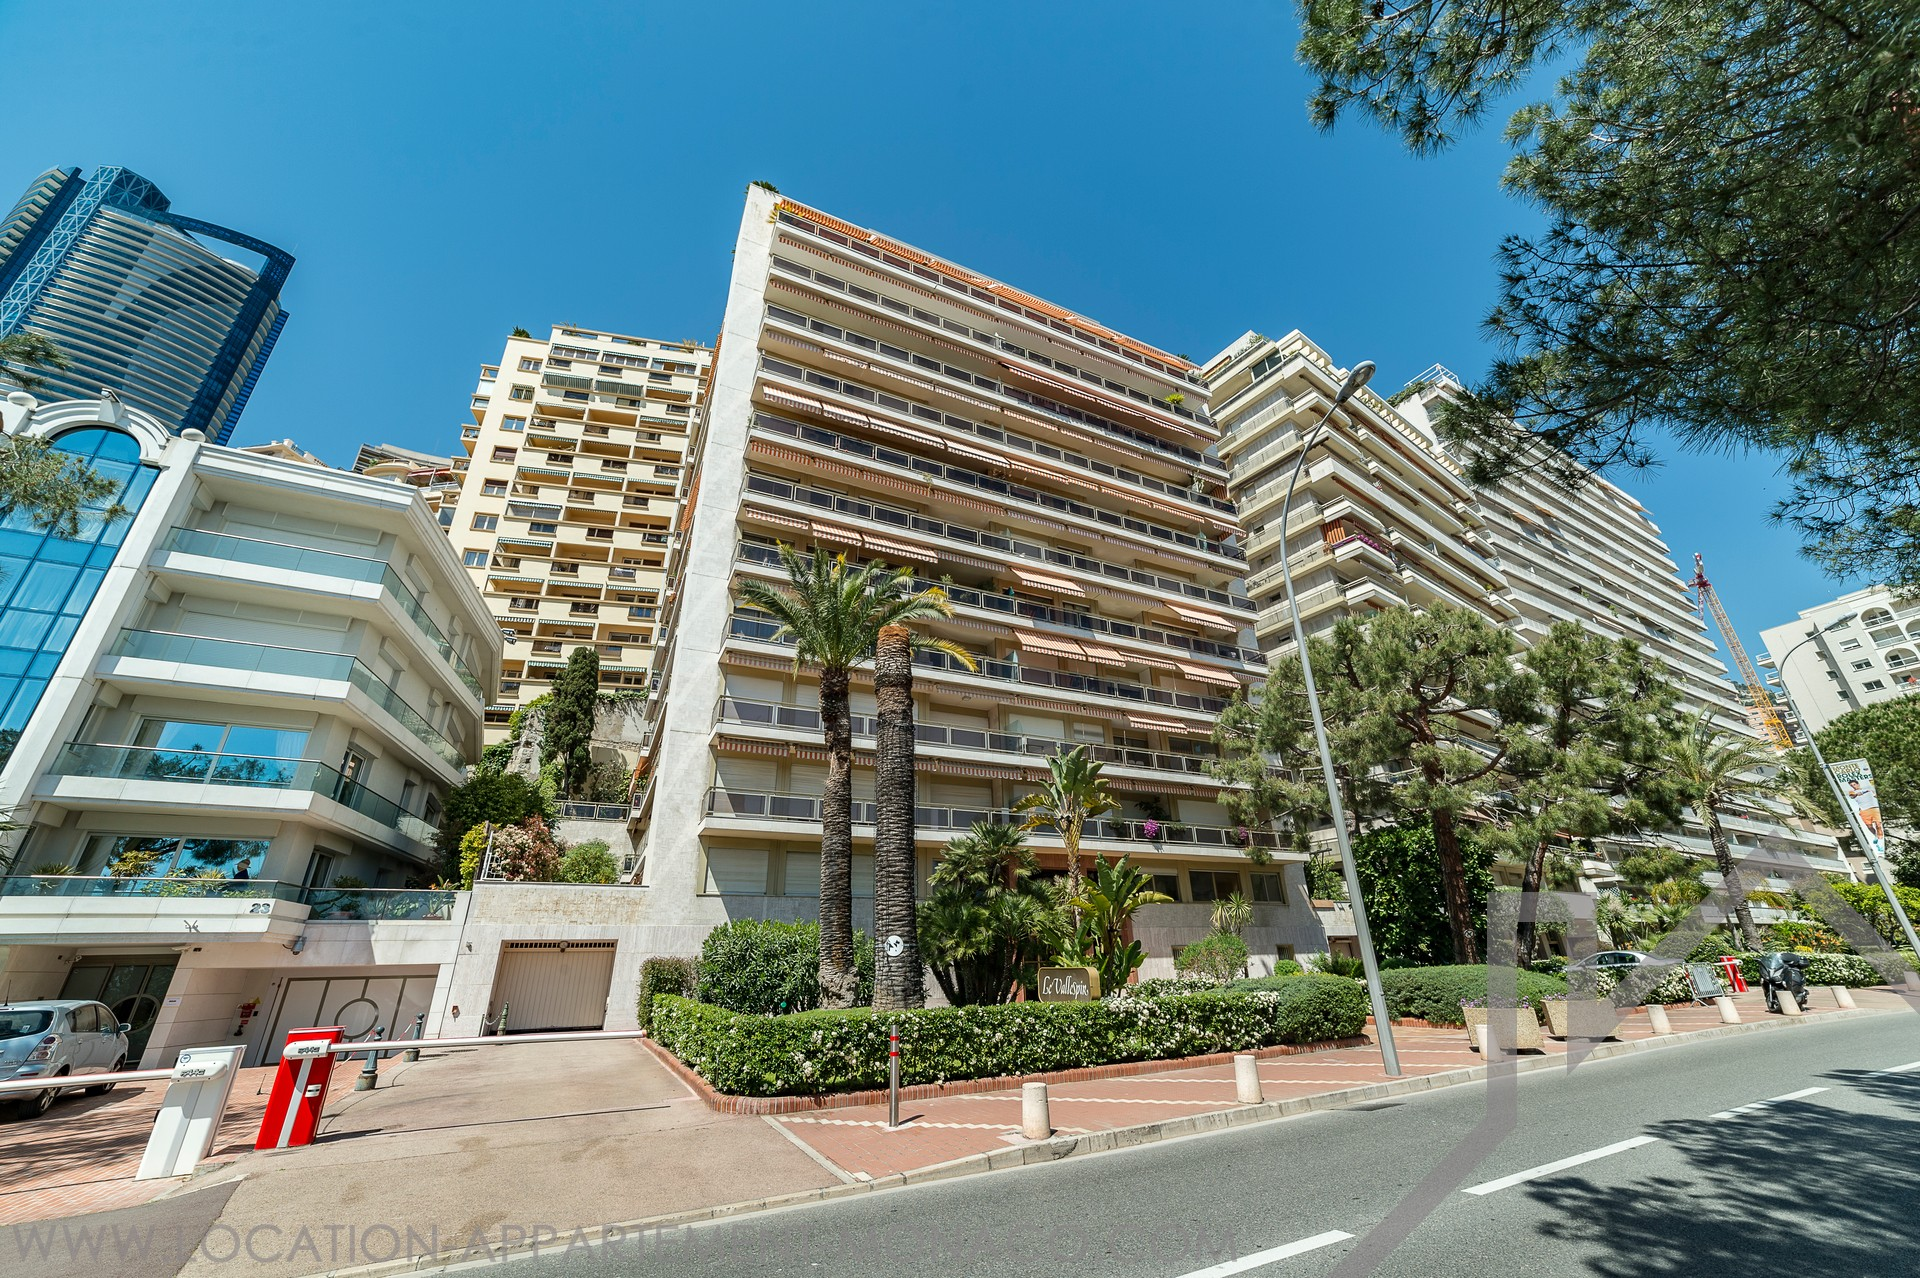 VALLESPIR - Closed Parking Space - Apartments for rent in Monaco